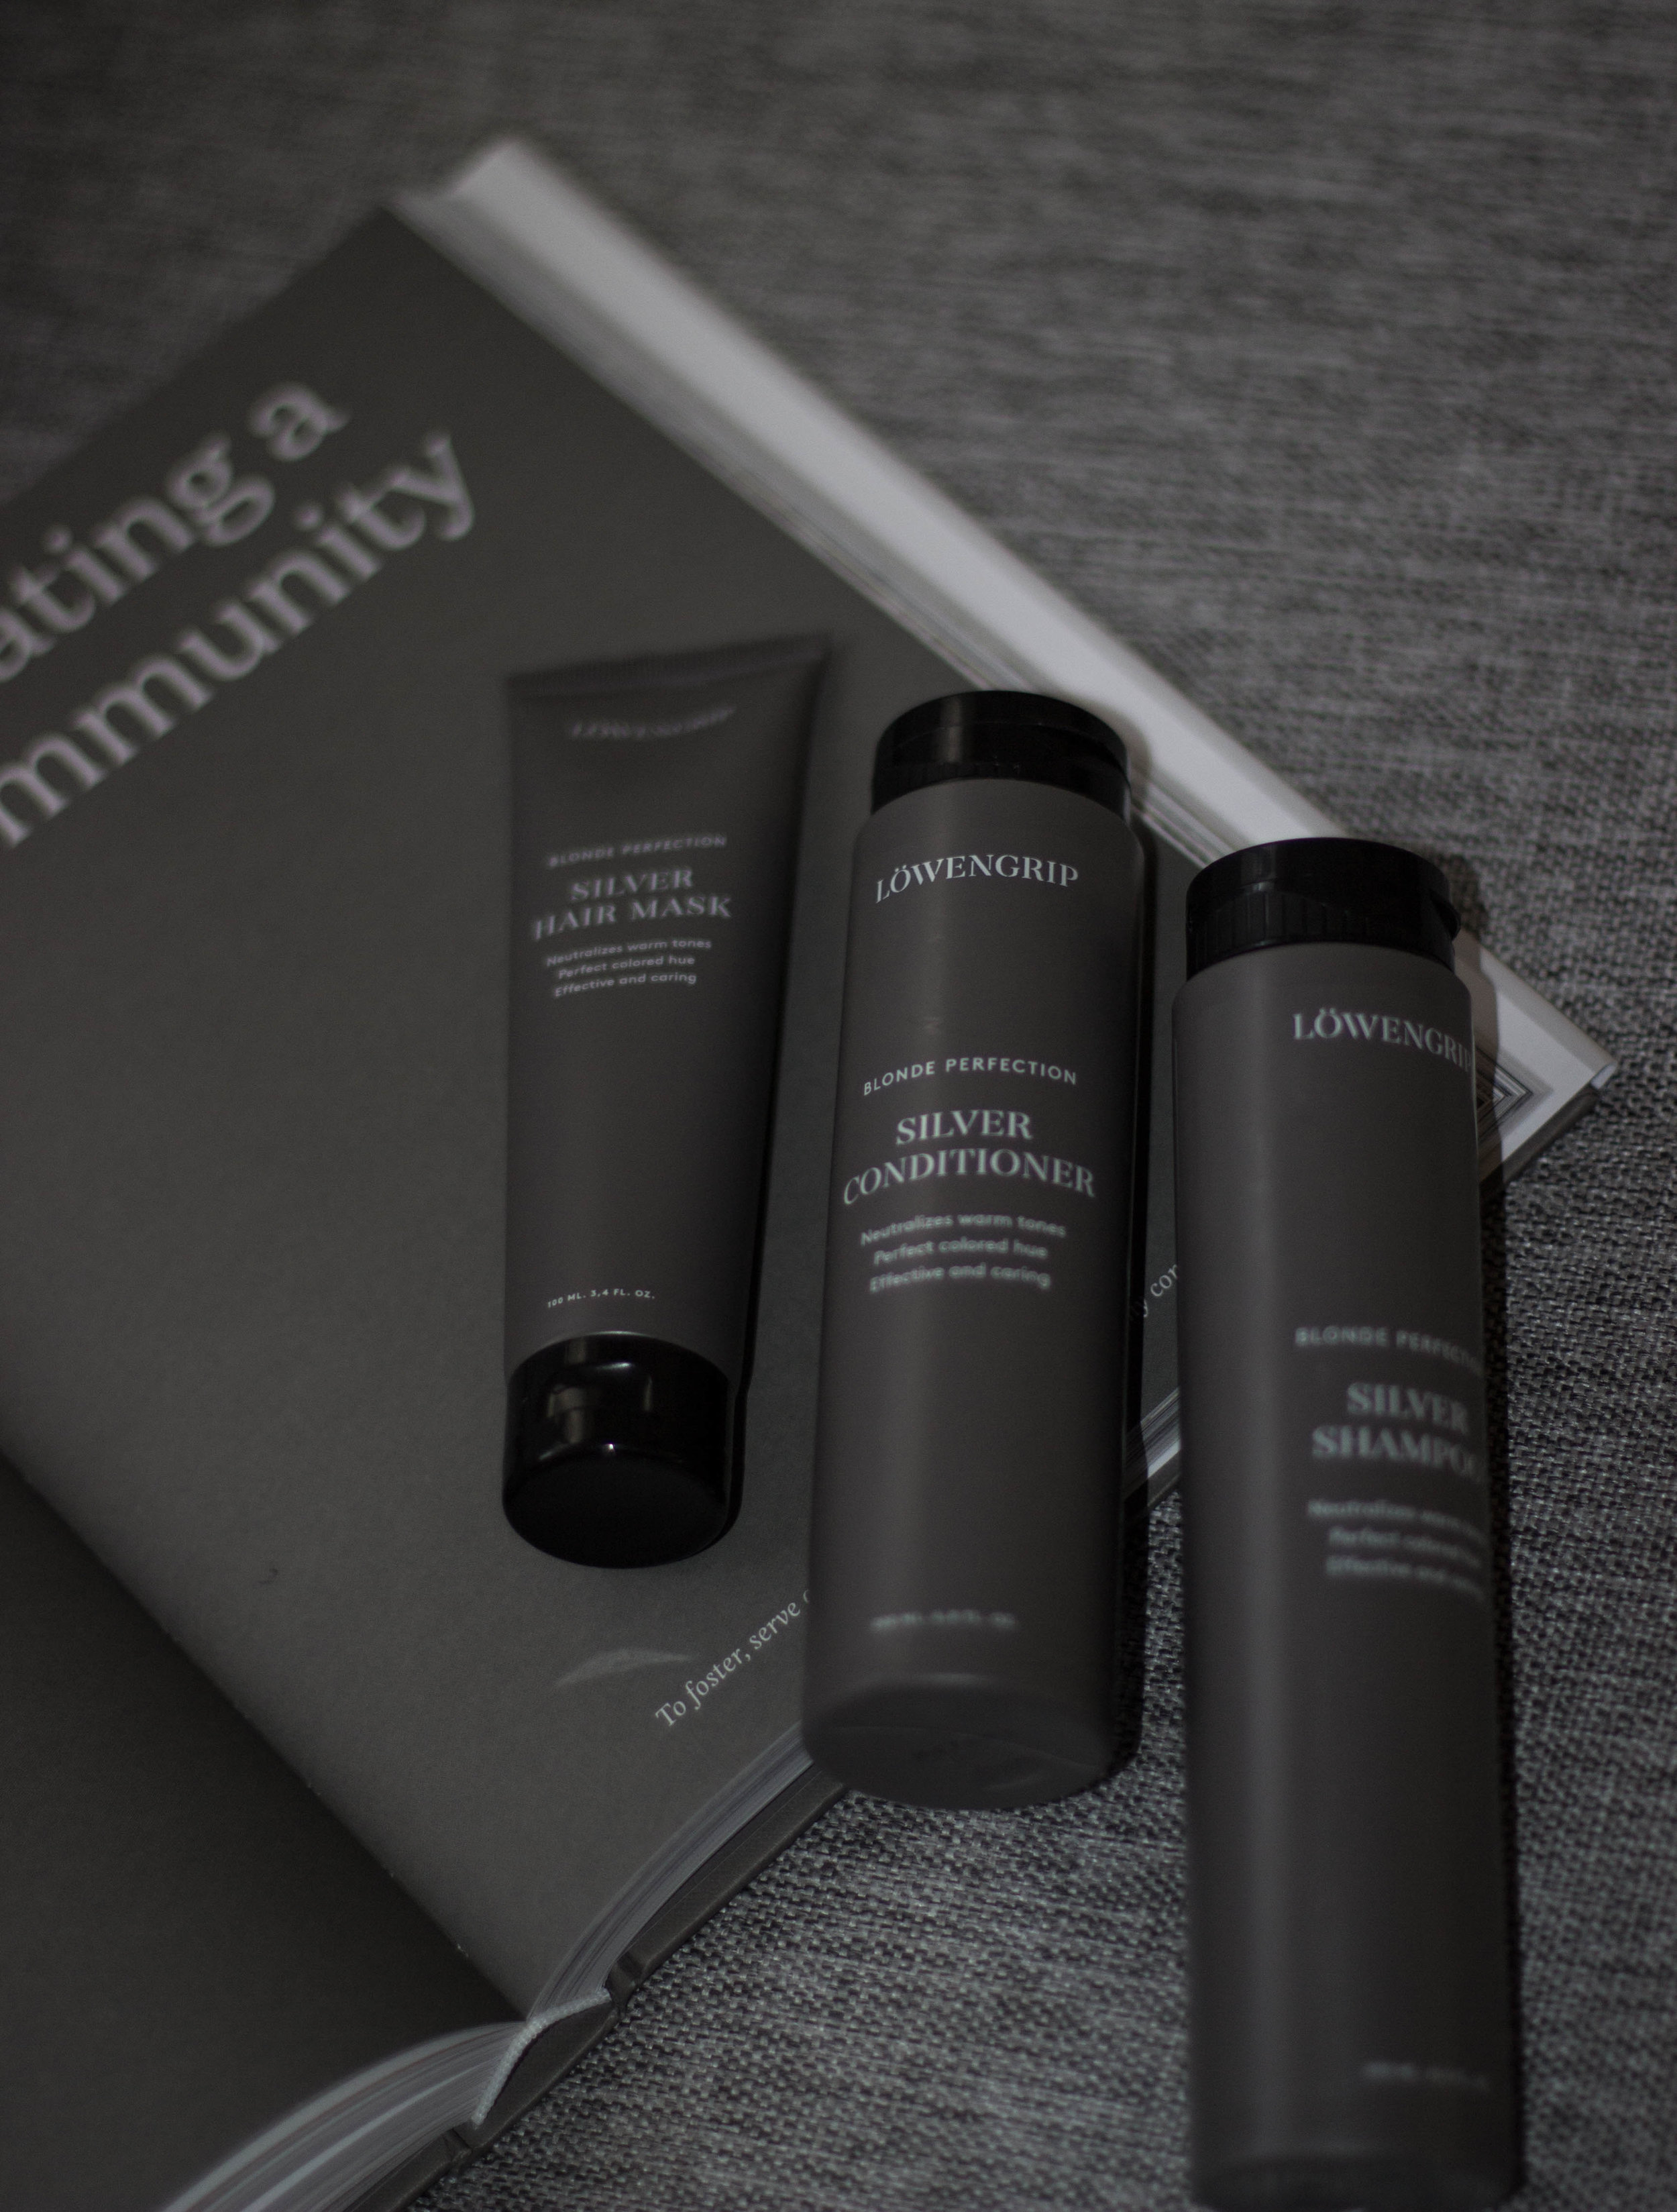 löwengrip_about_that_look_beauty_skincare_hair_care